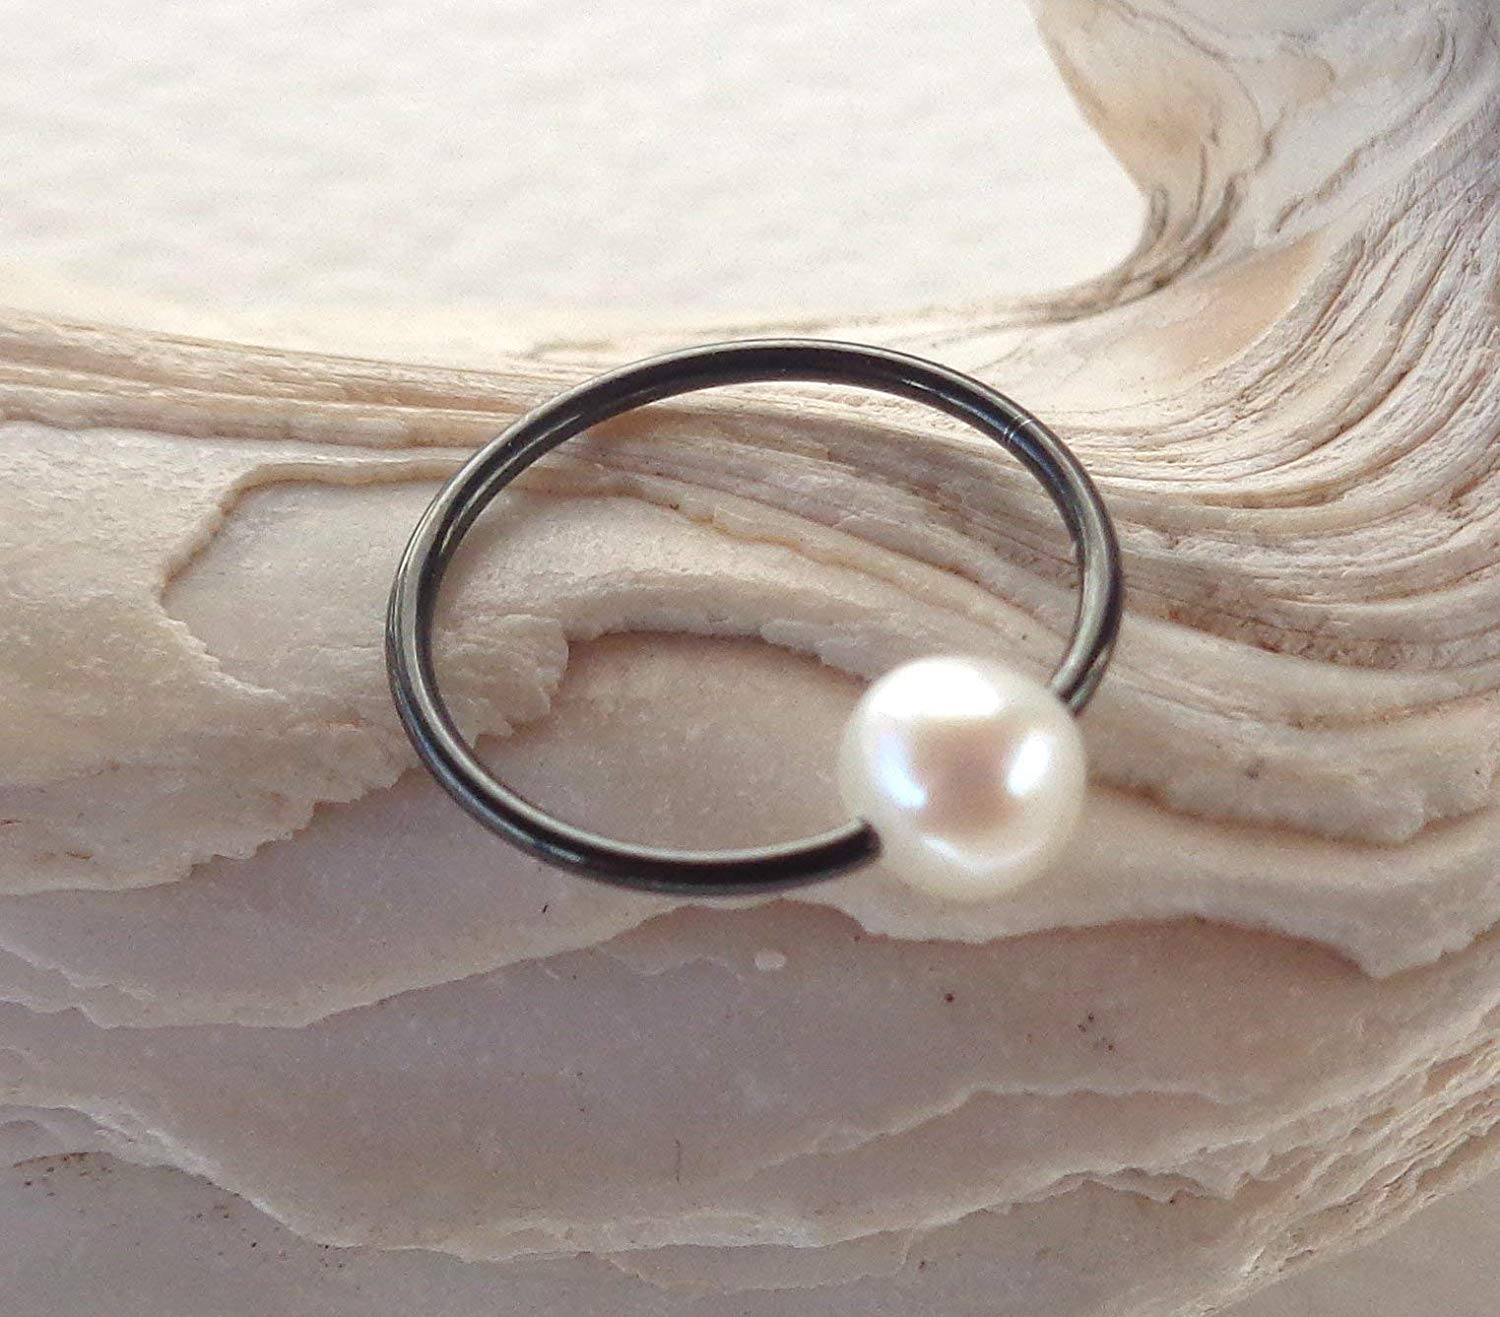 BCR,Captive Freshwater Pearl Septum,Upper Ear Daith Rook,Tragus,Cartilage,Helix,Hoop Earring,Nose Ring,Eyebrow Piercing